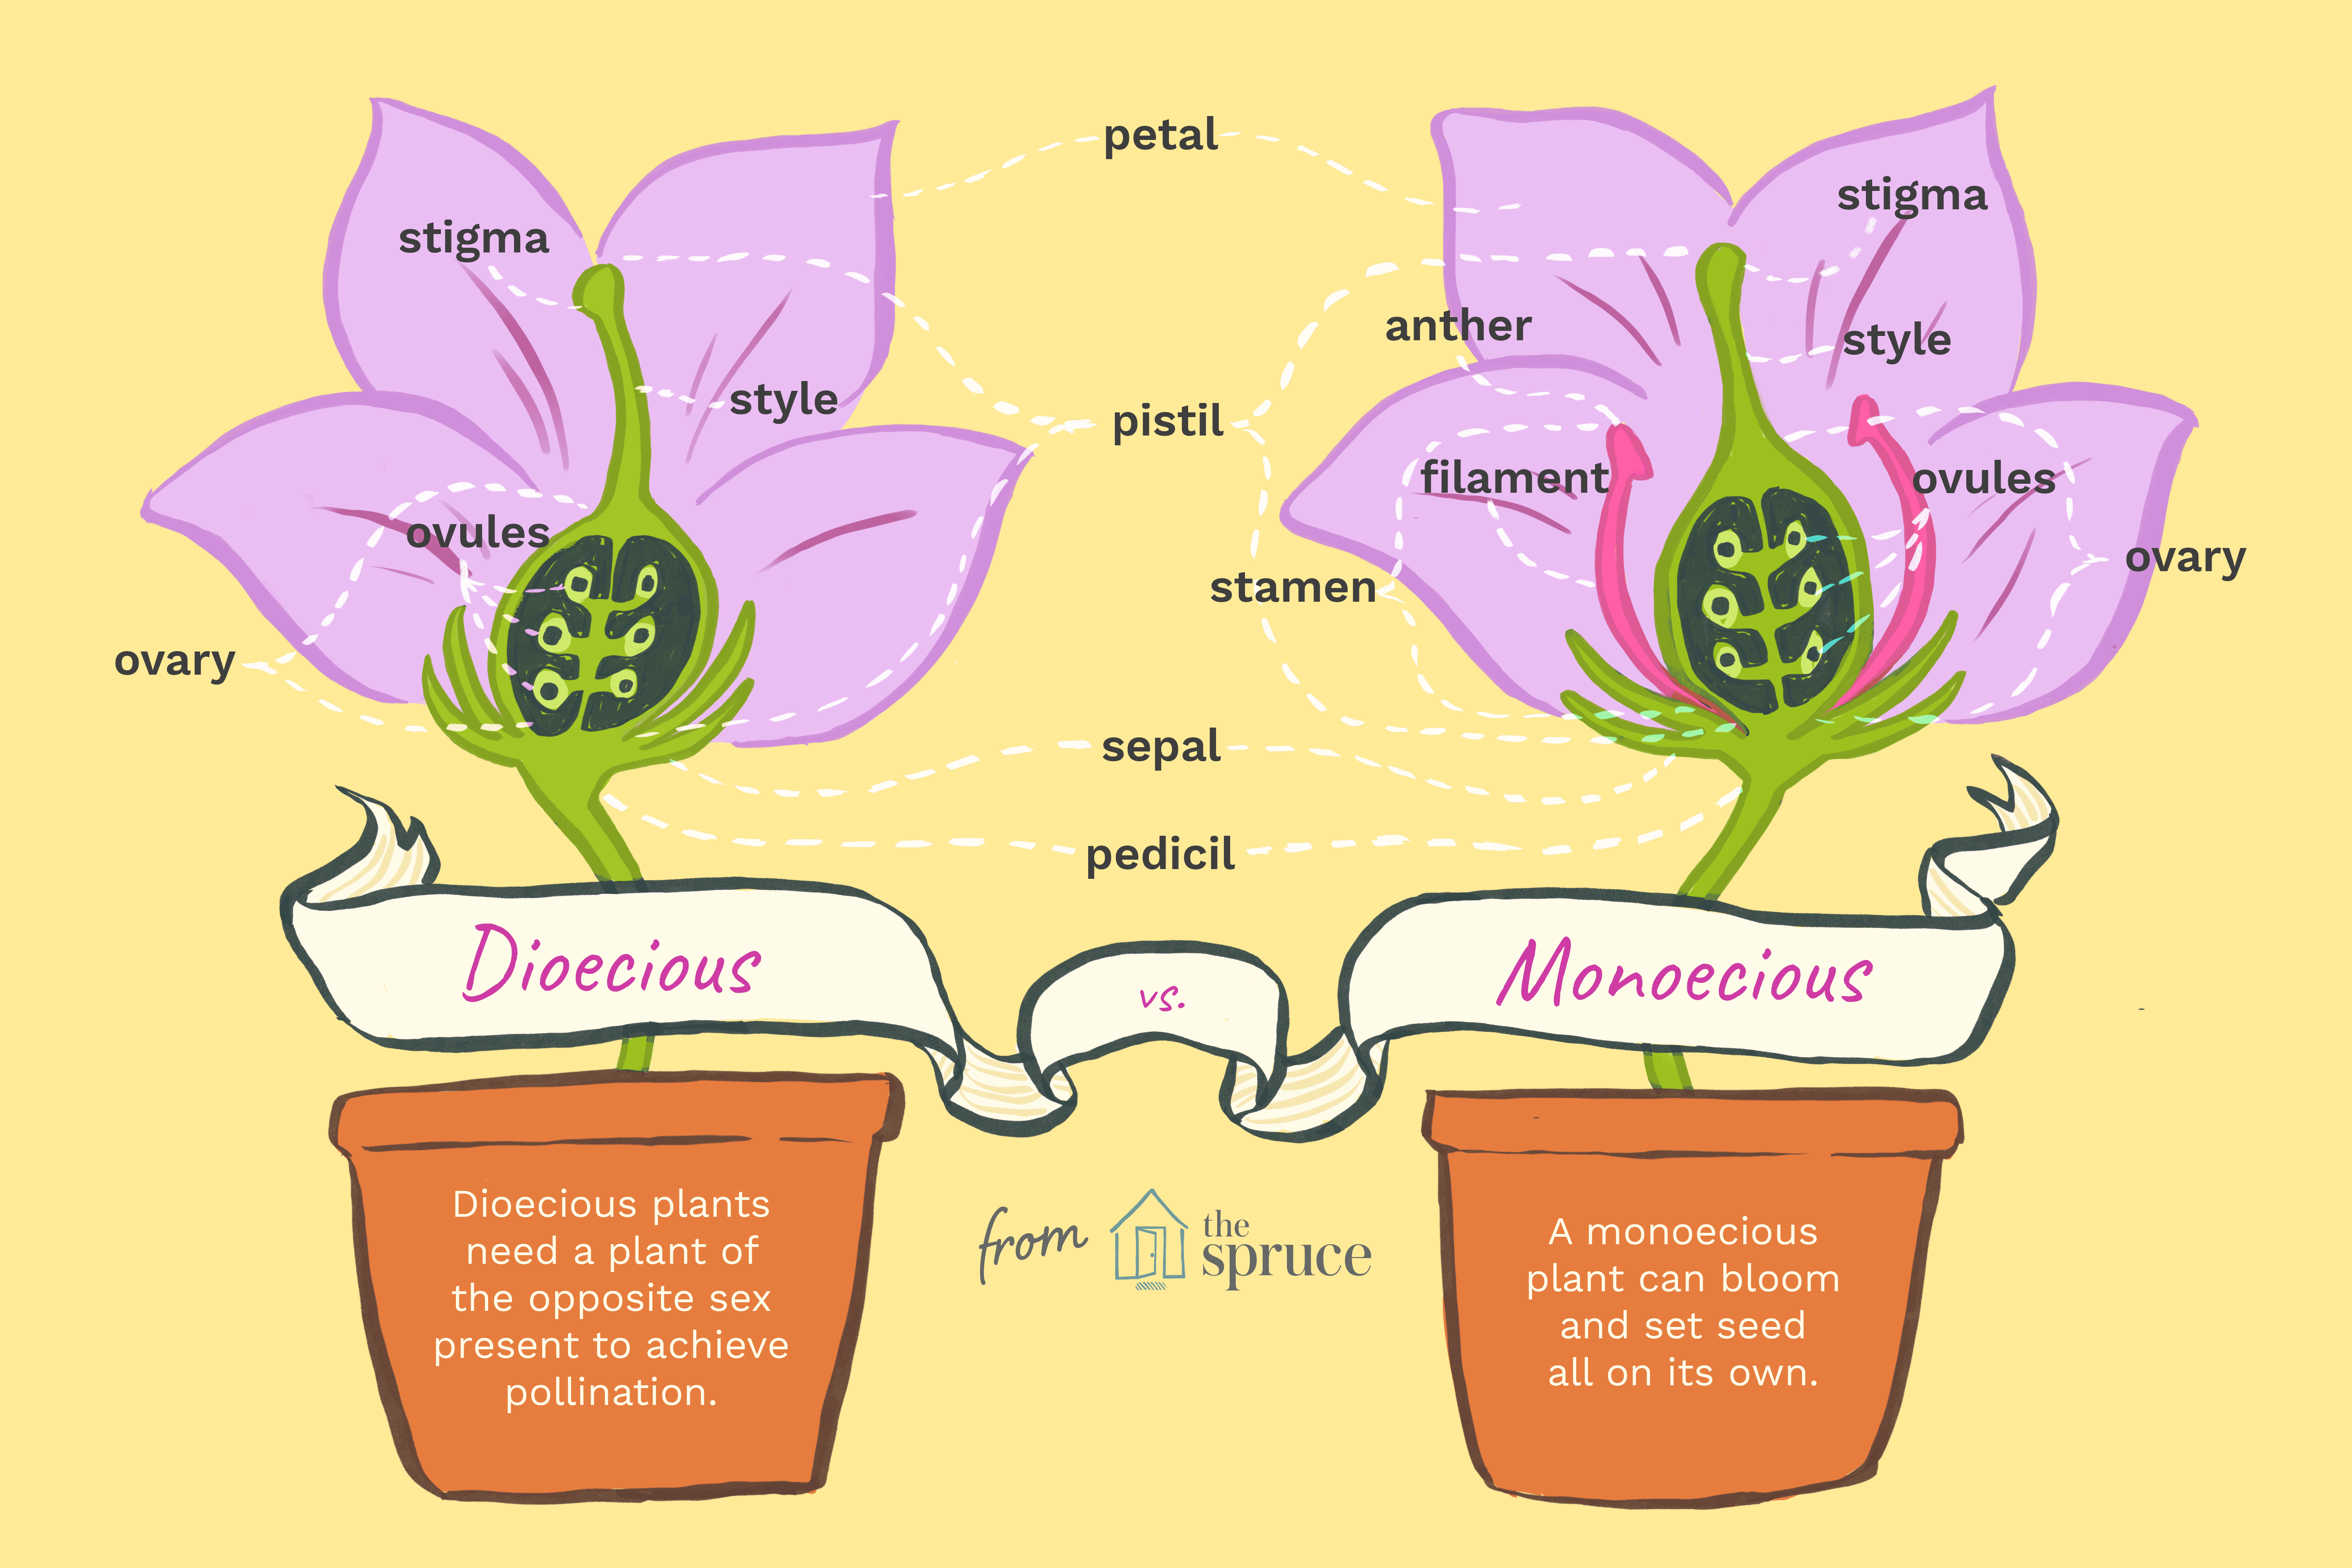 Illustration of dioecious and monoecious plant differences